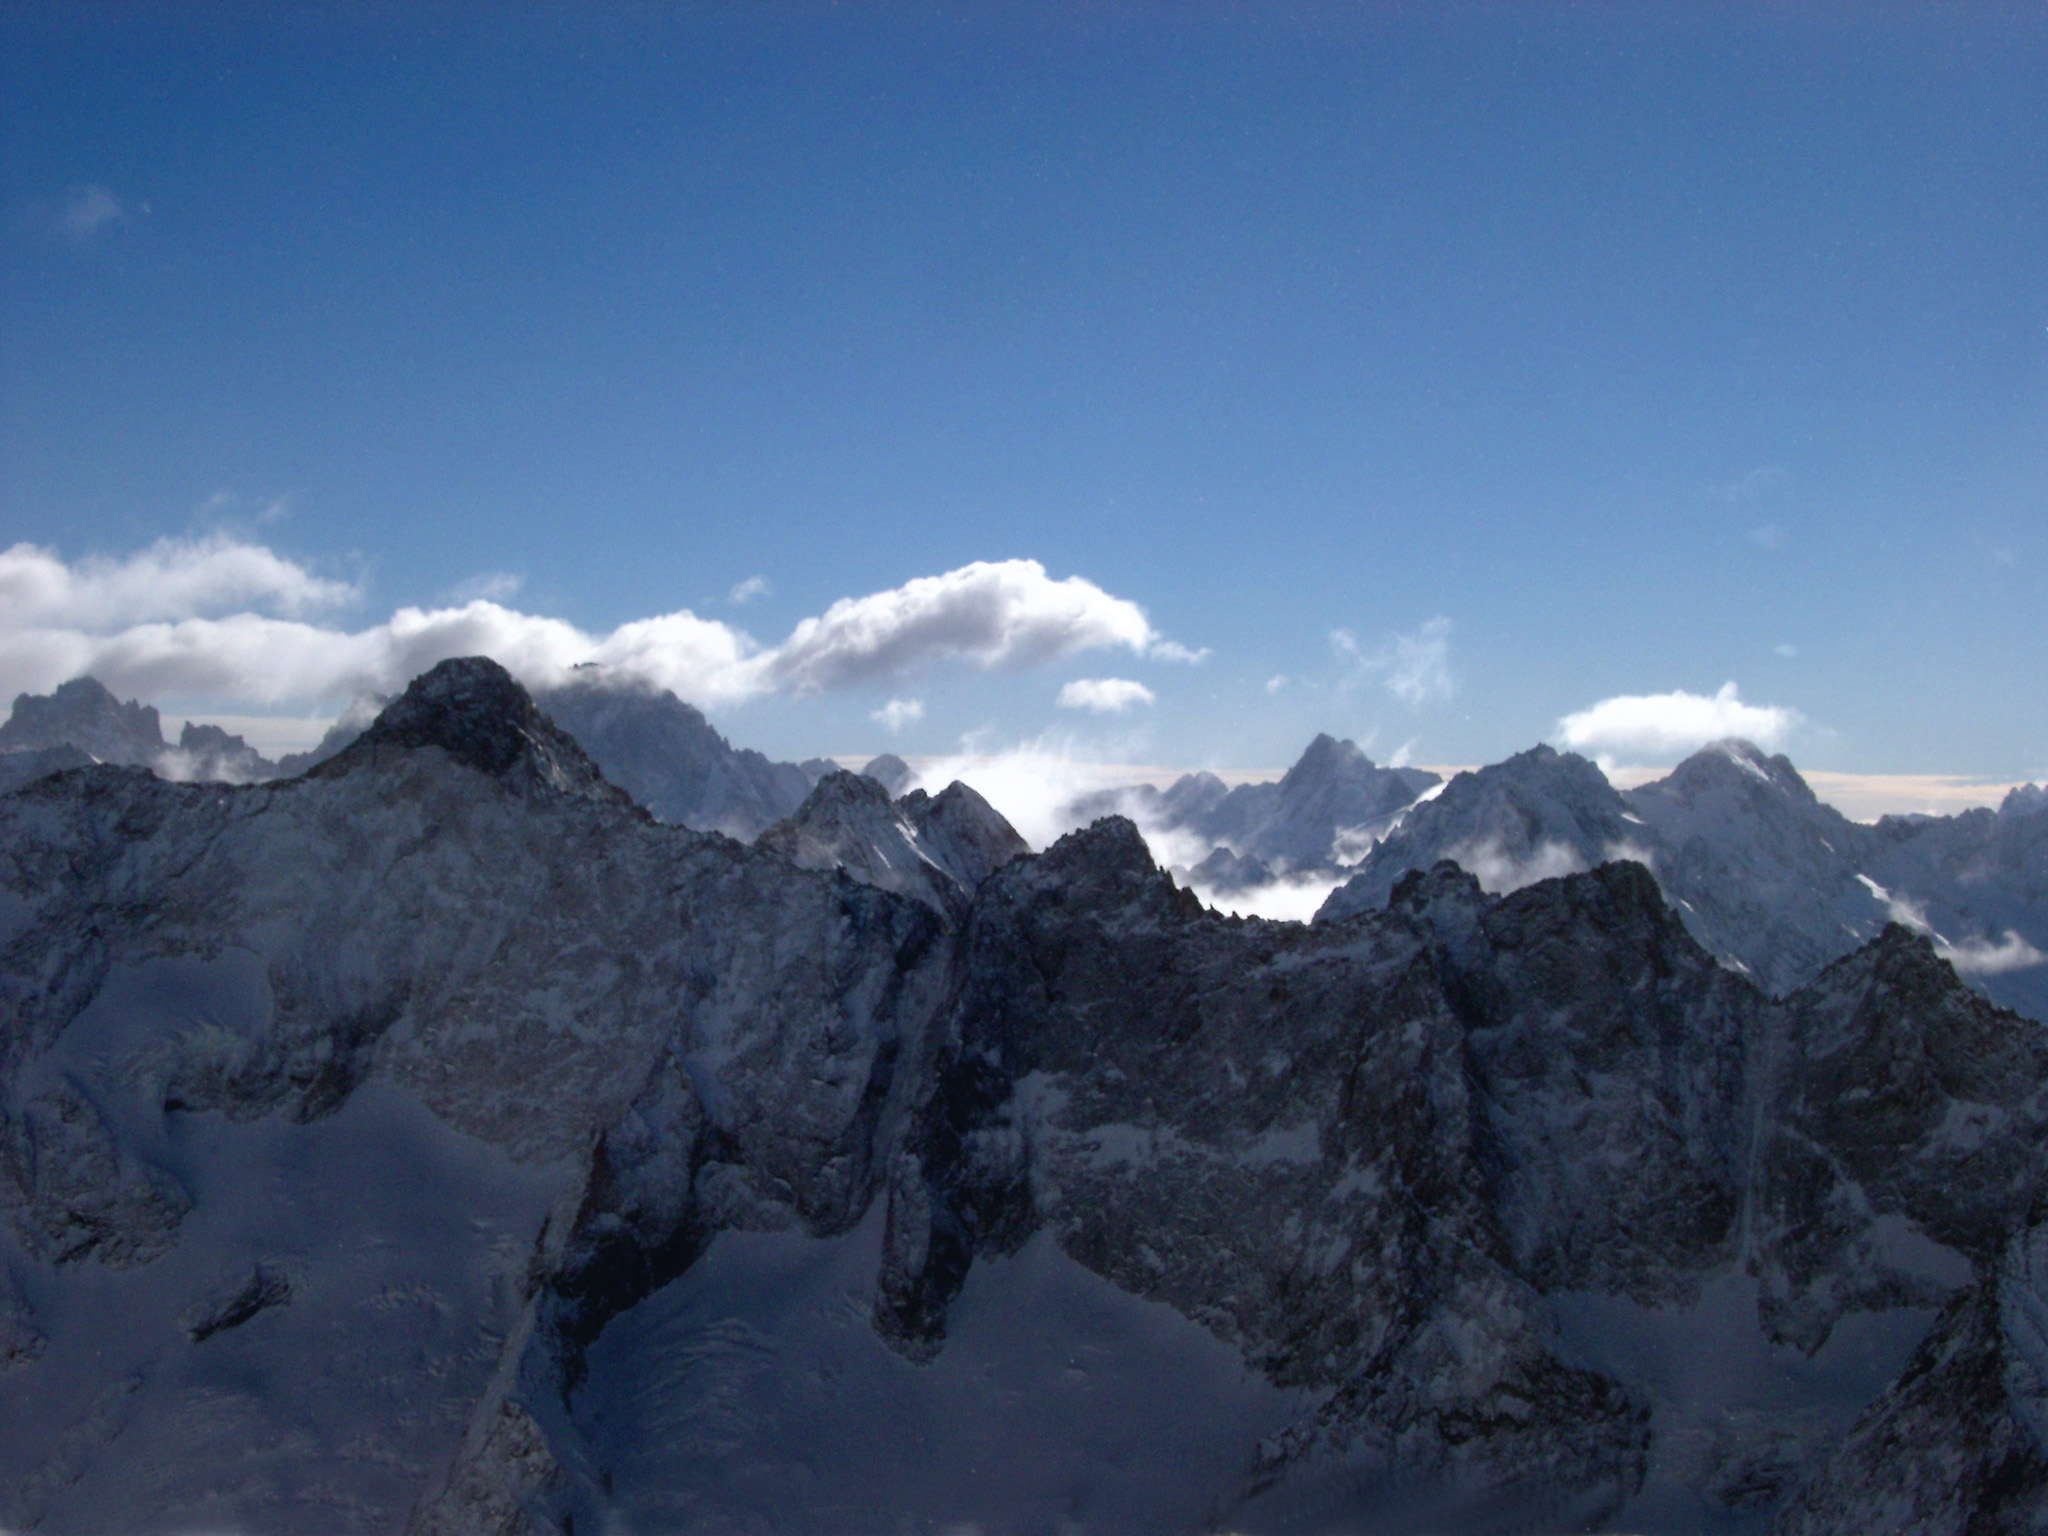 High rugged alpine peaks in France in winter with fluffy white clouds above in a blue sunny sky